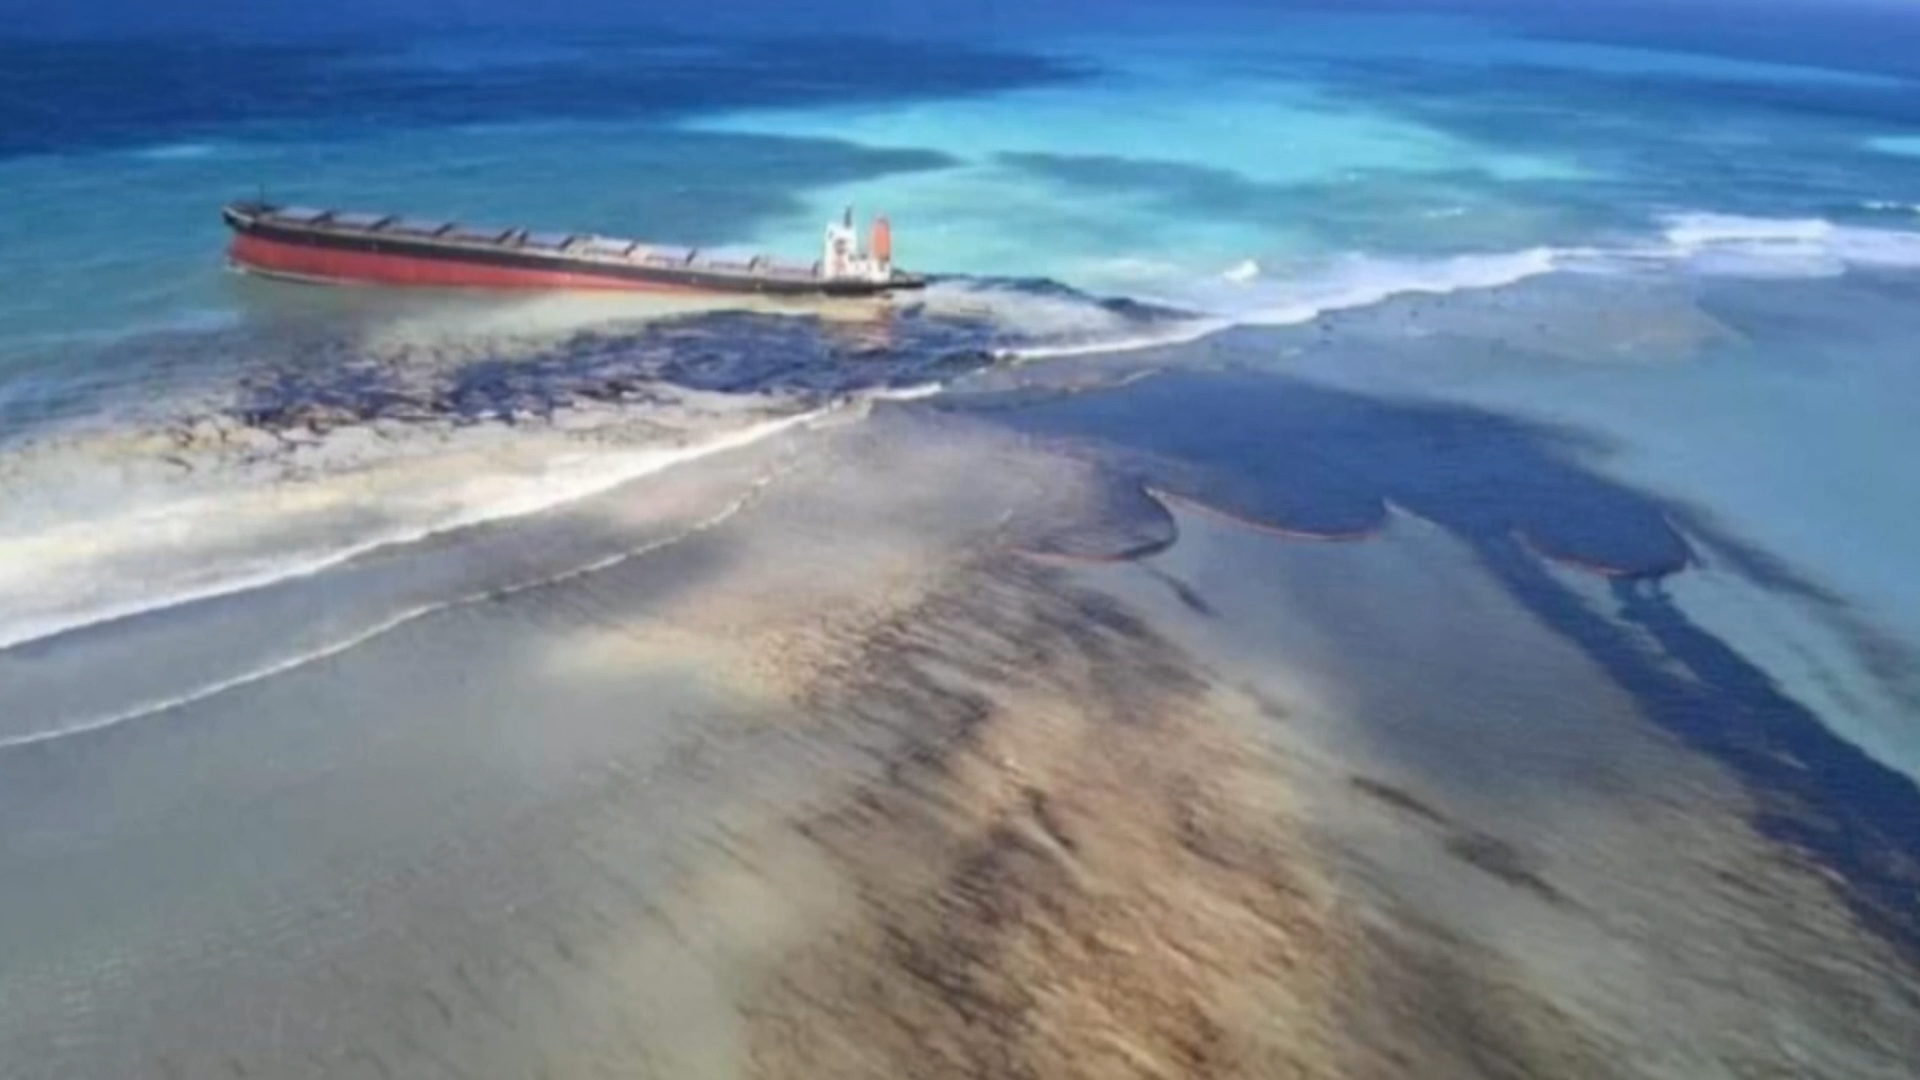 Mauritius declare state of environmental emergency after huge oil spill - channel 4